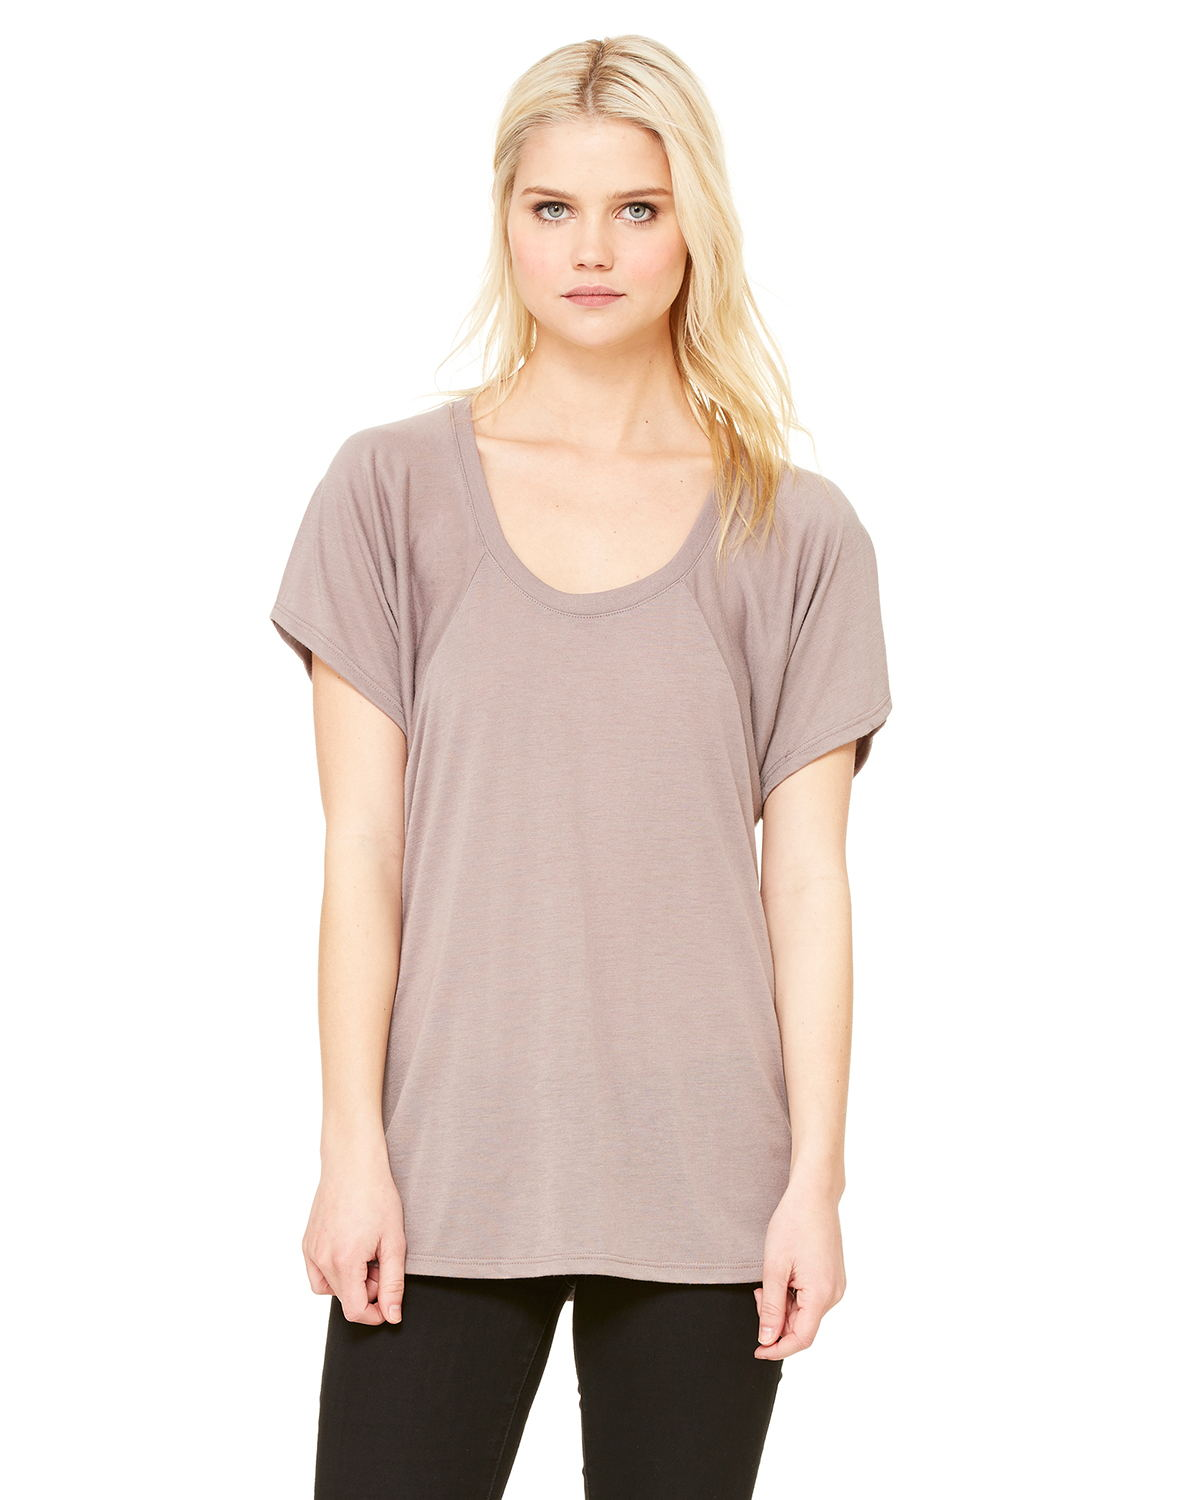 Canvas B8801 - Ladies' Flowy Raglan Tee